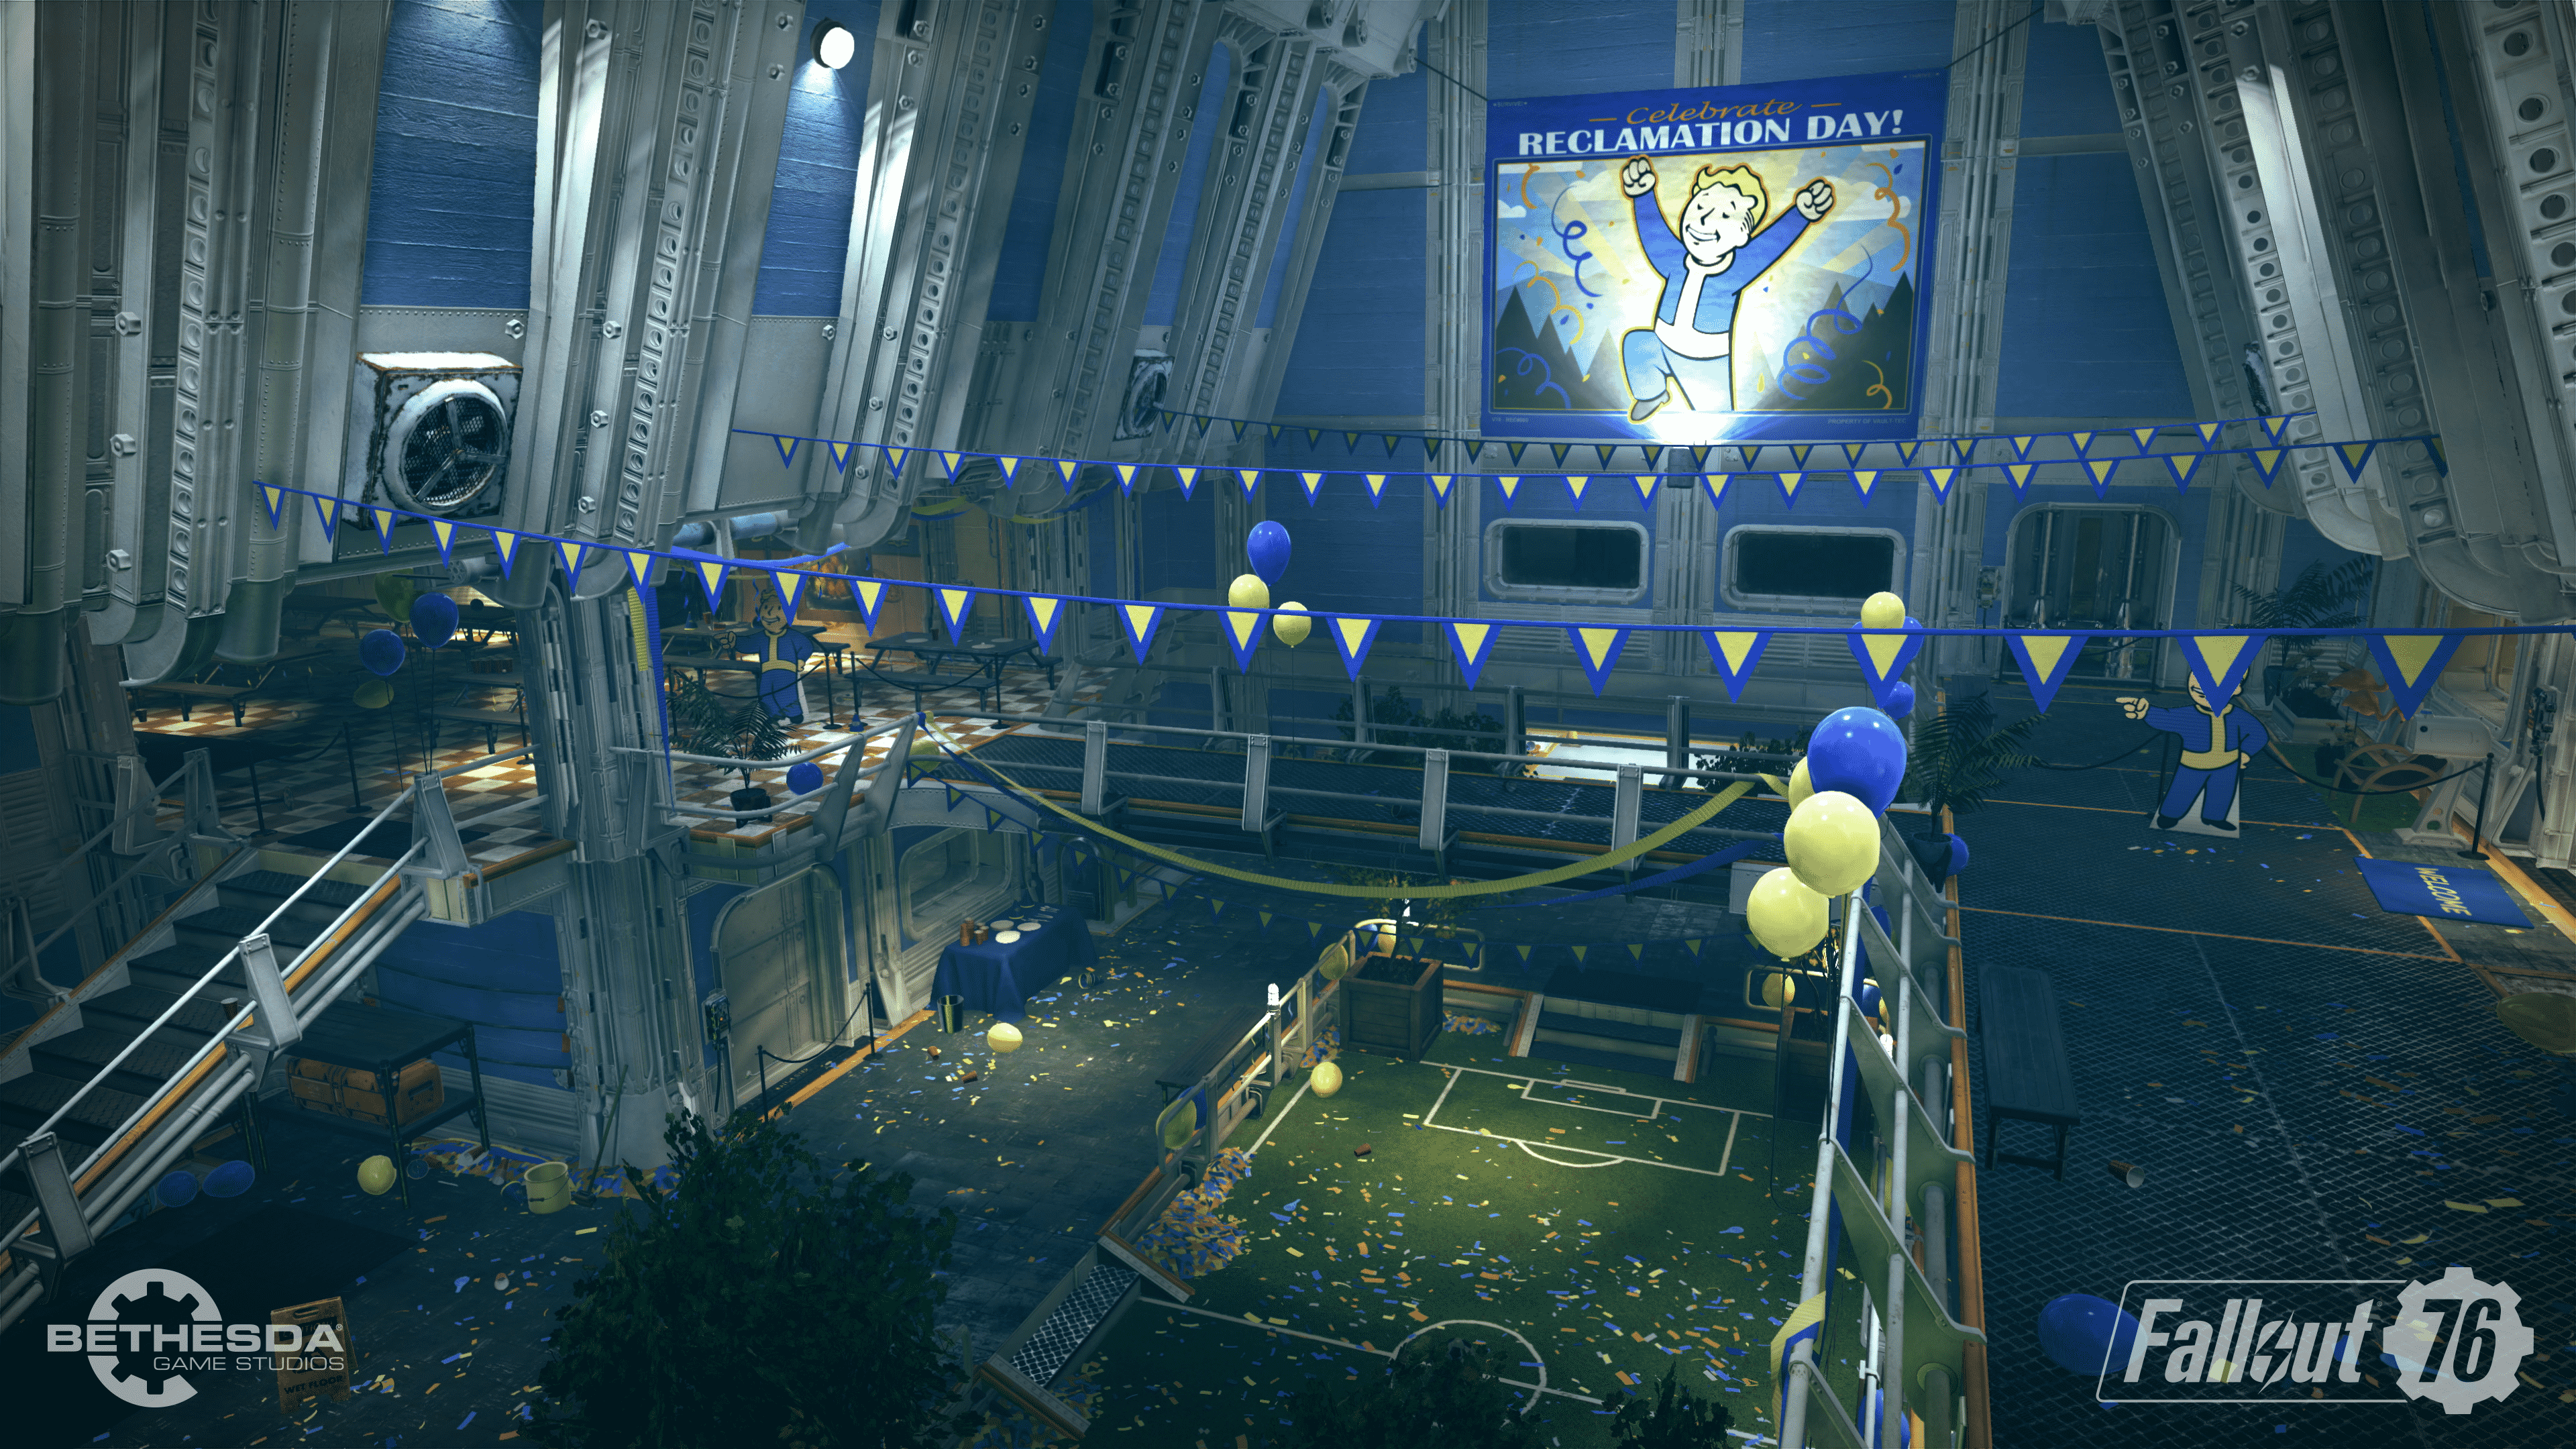 Fallout 76 Is A New Bethesda Game Featuring Vault 76; Watch First Trailer Before E3